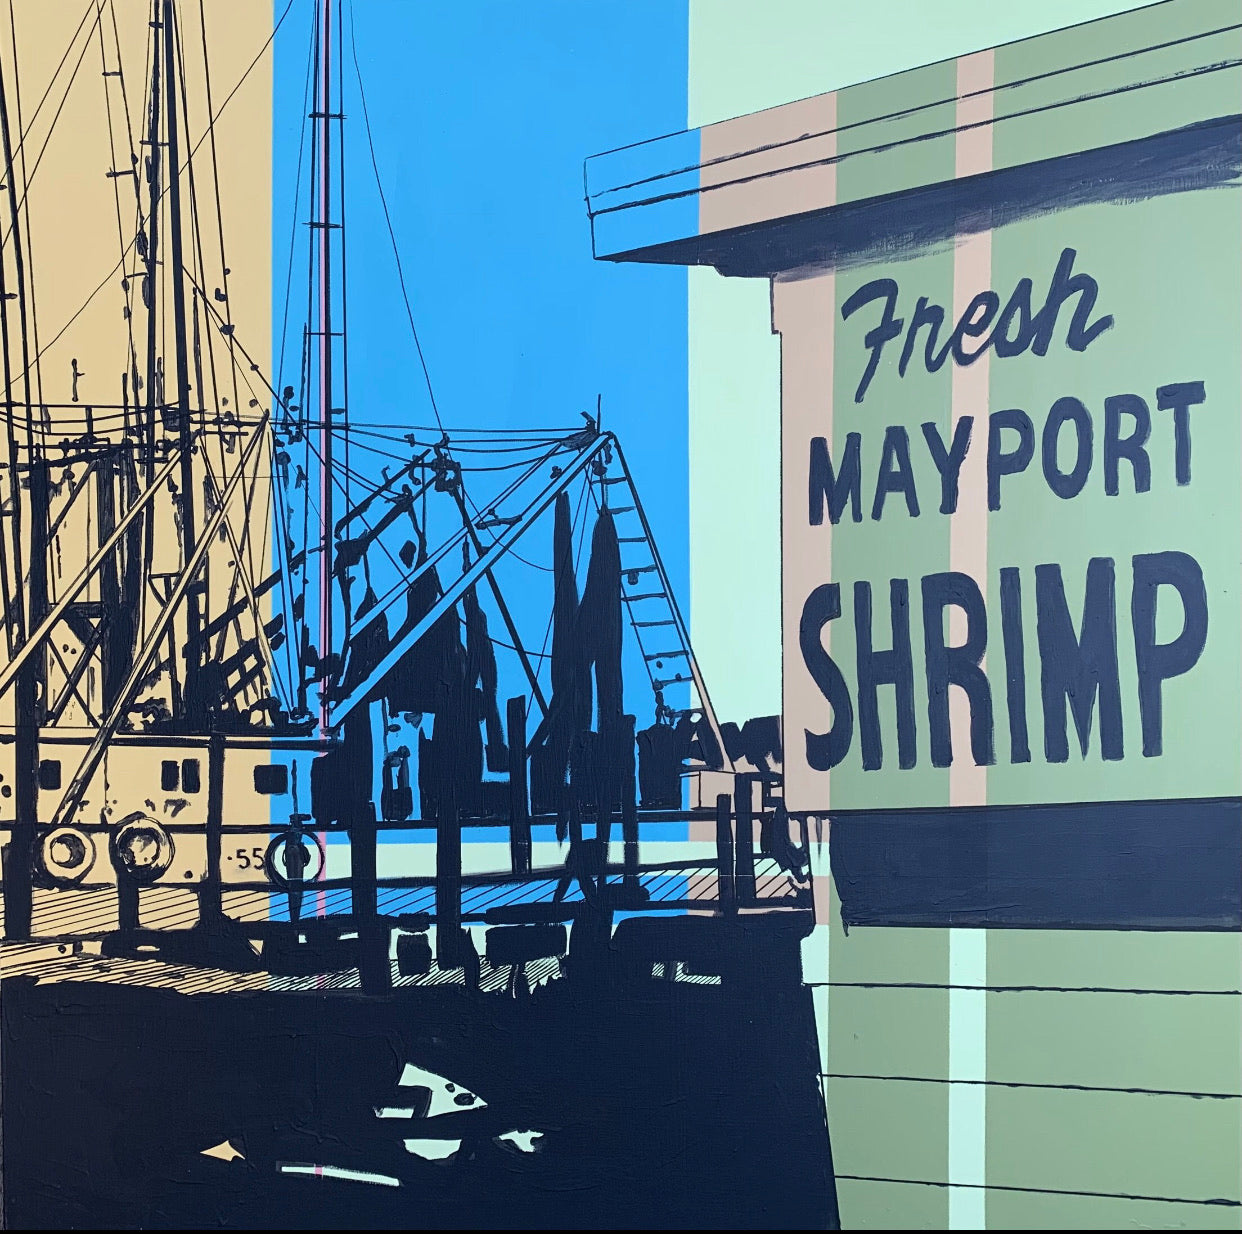 Mayport Shrimp